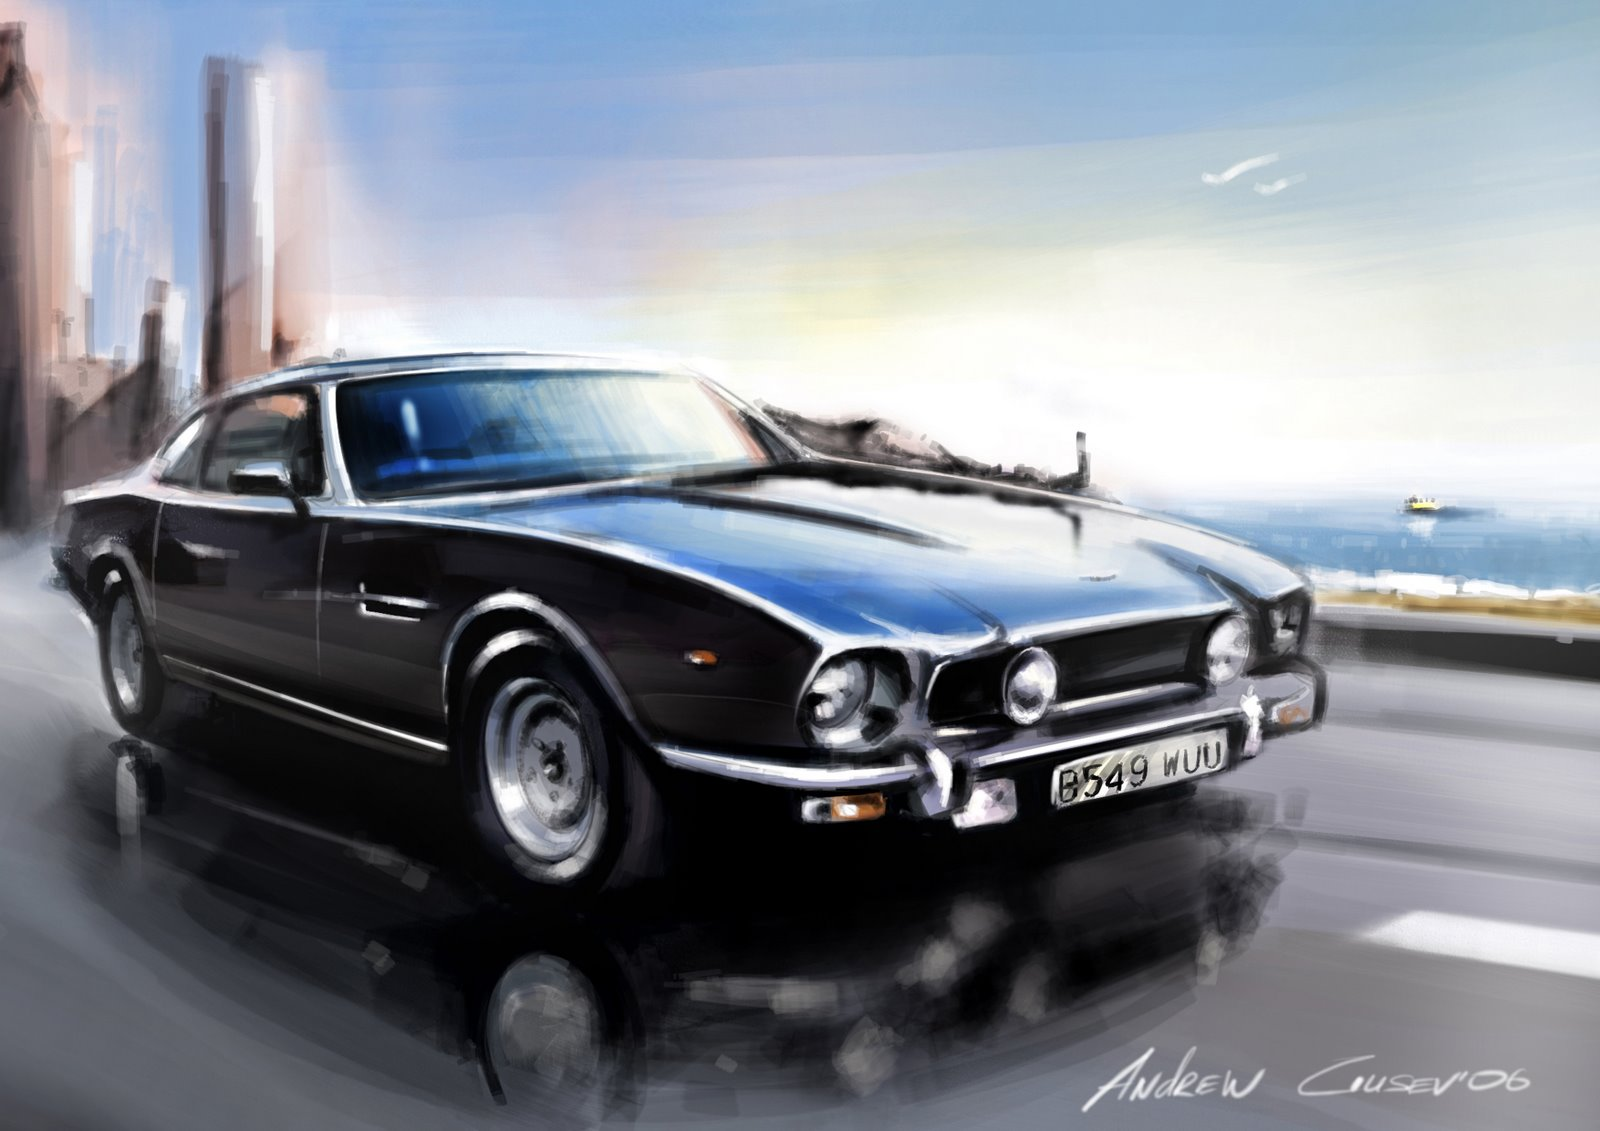 Tamerlanes Thoughts Cool Car Art By Andrey Gusev - Cool car art